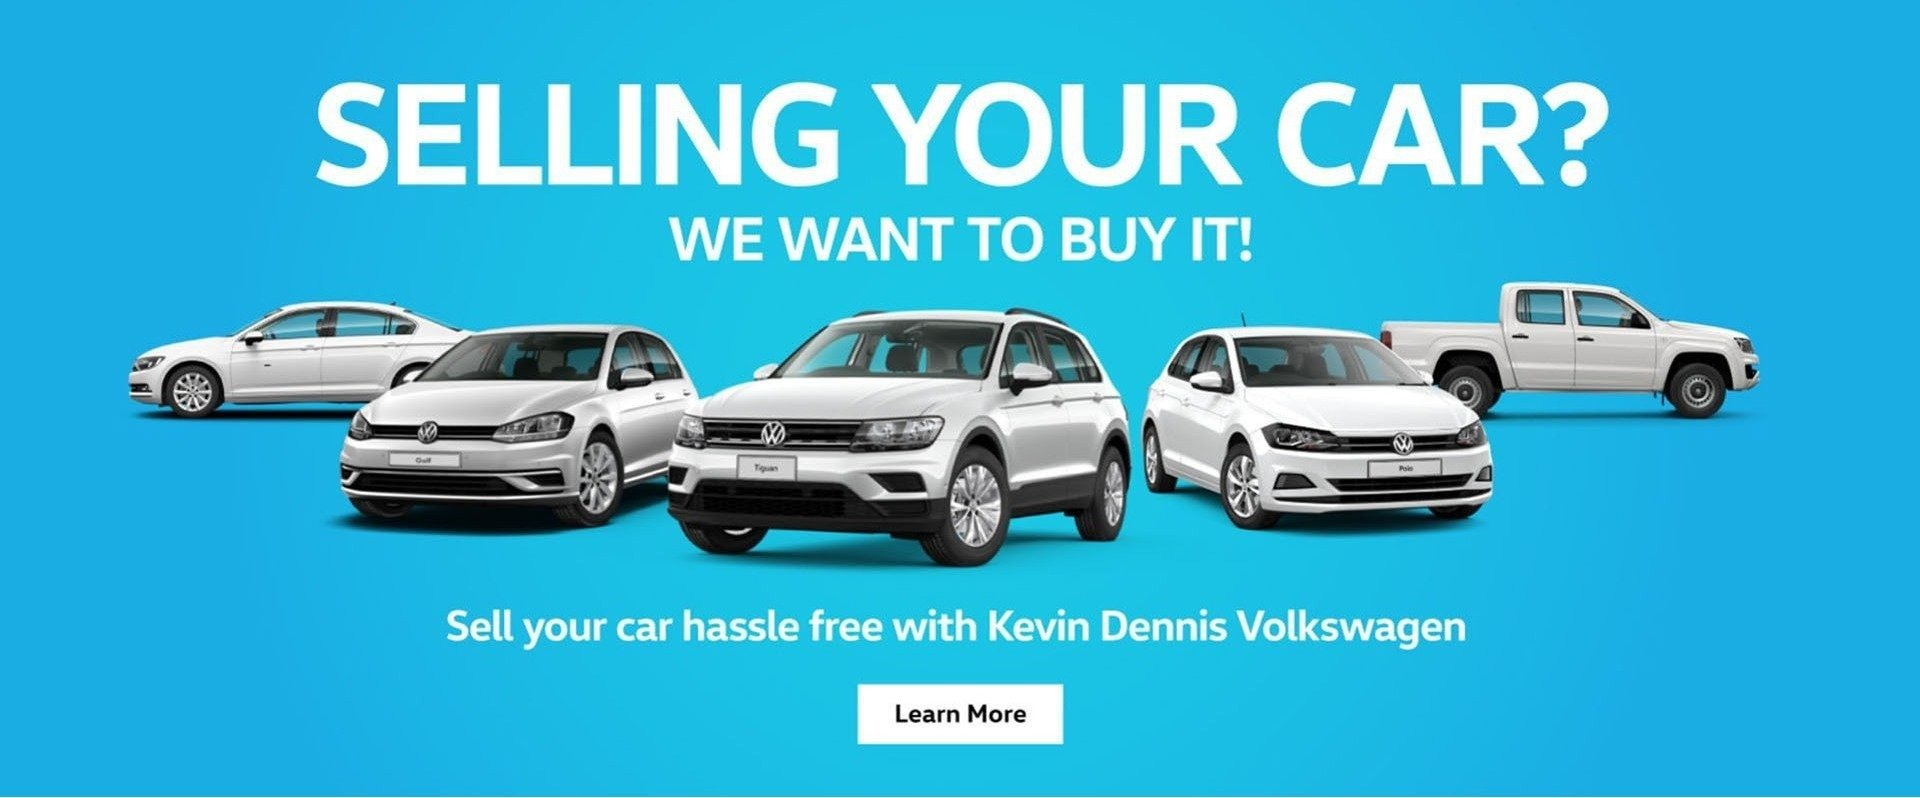 Selling Your Car?